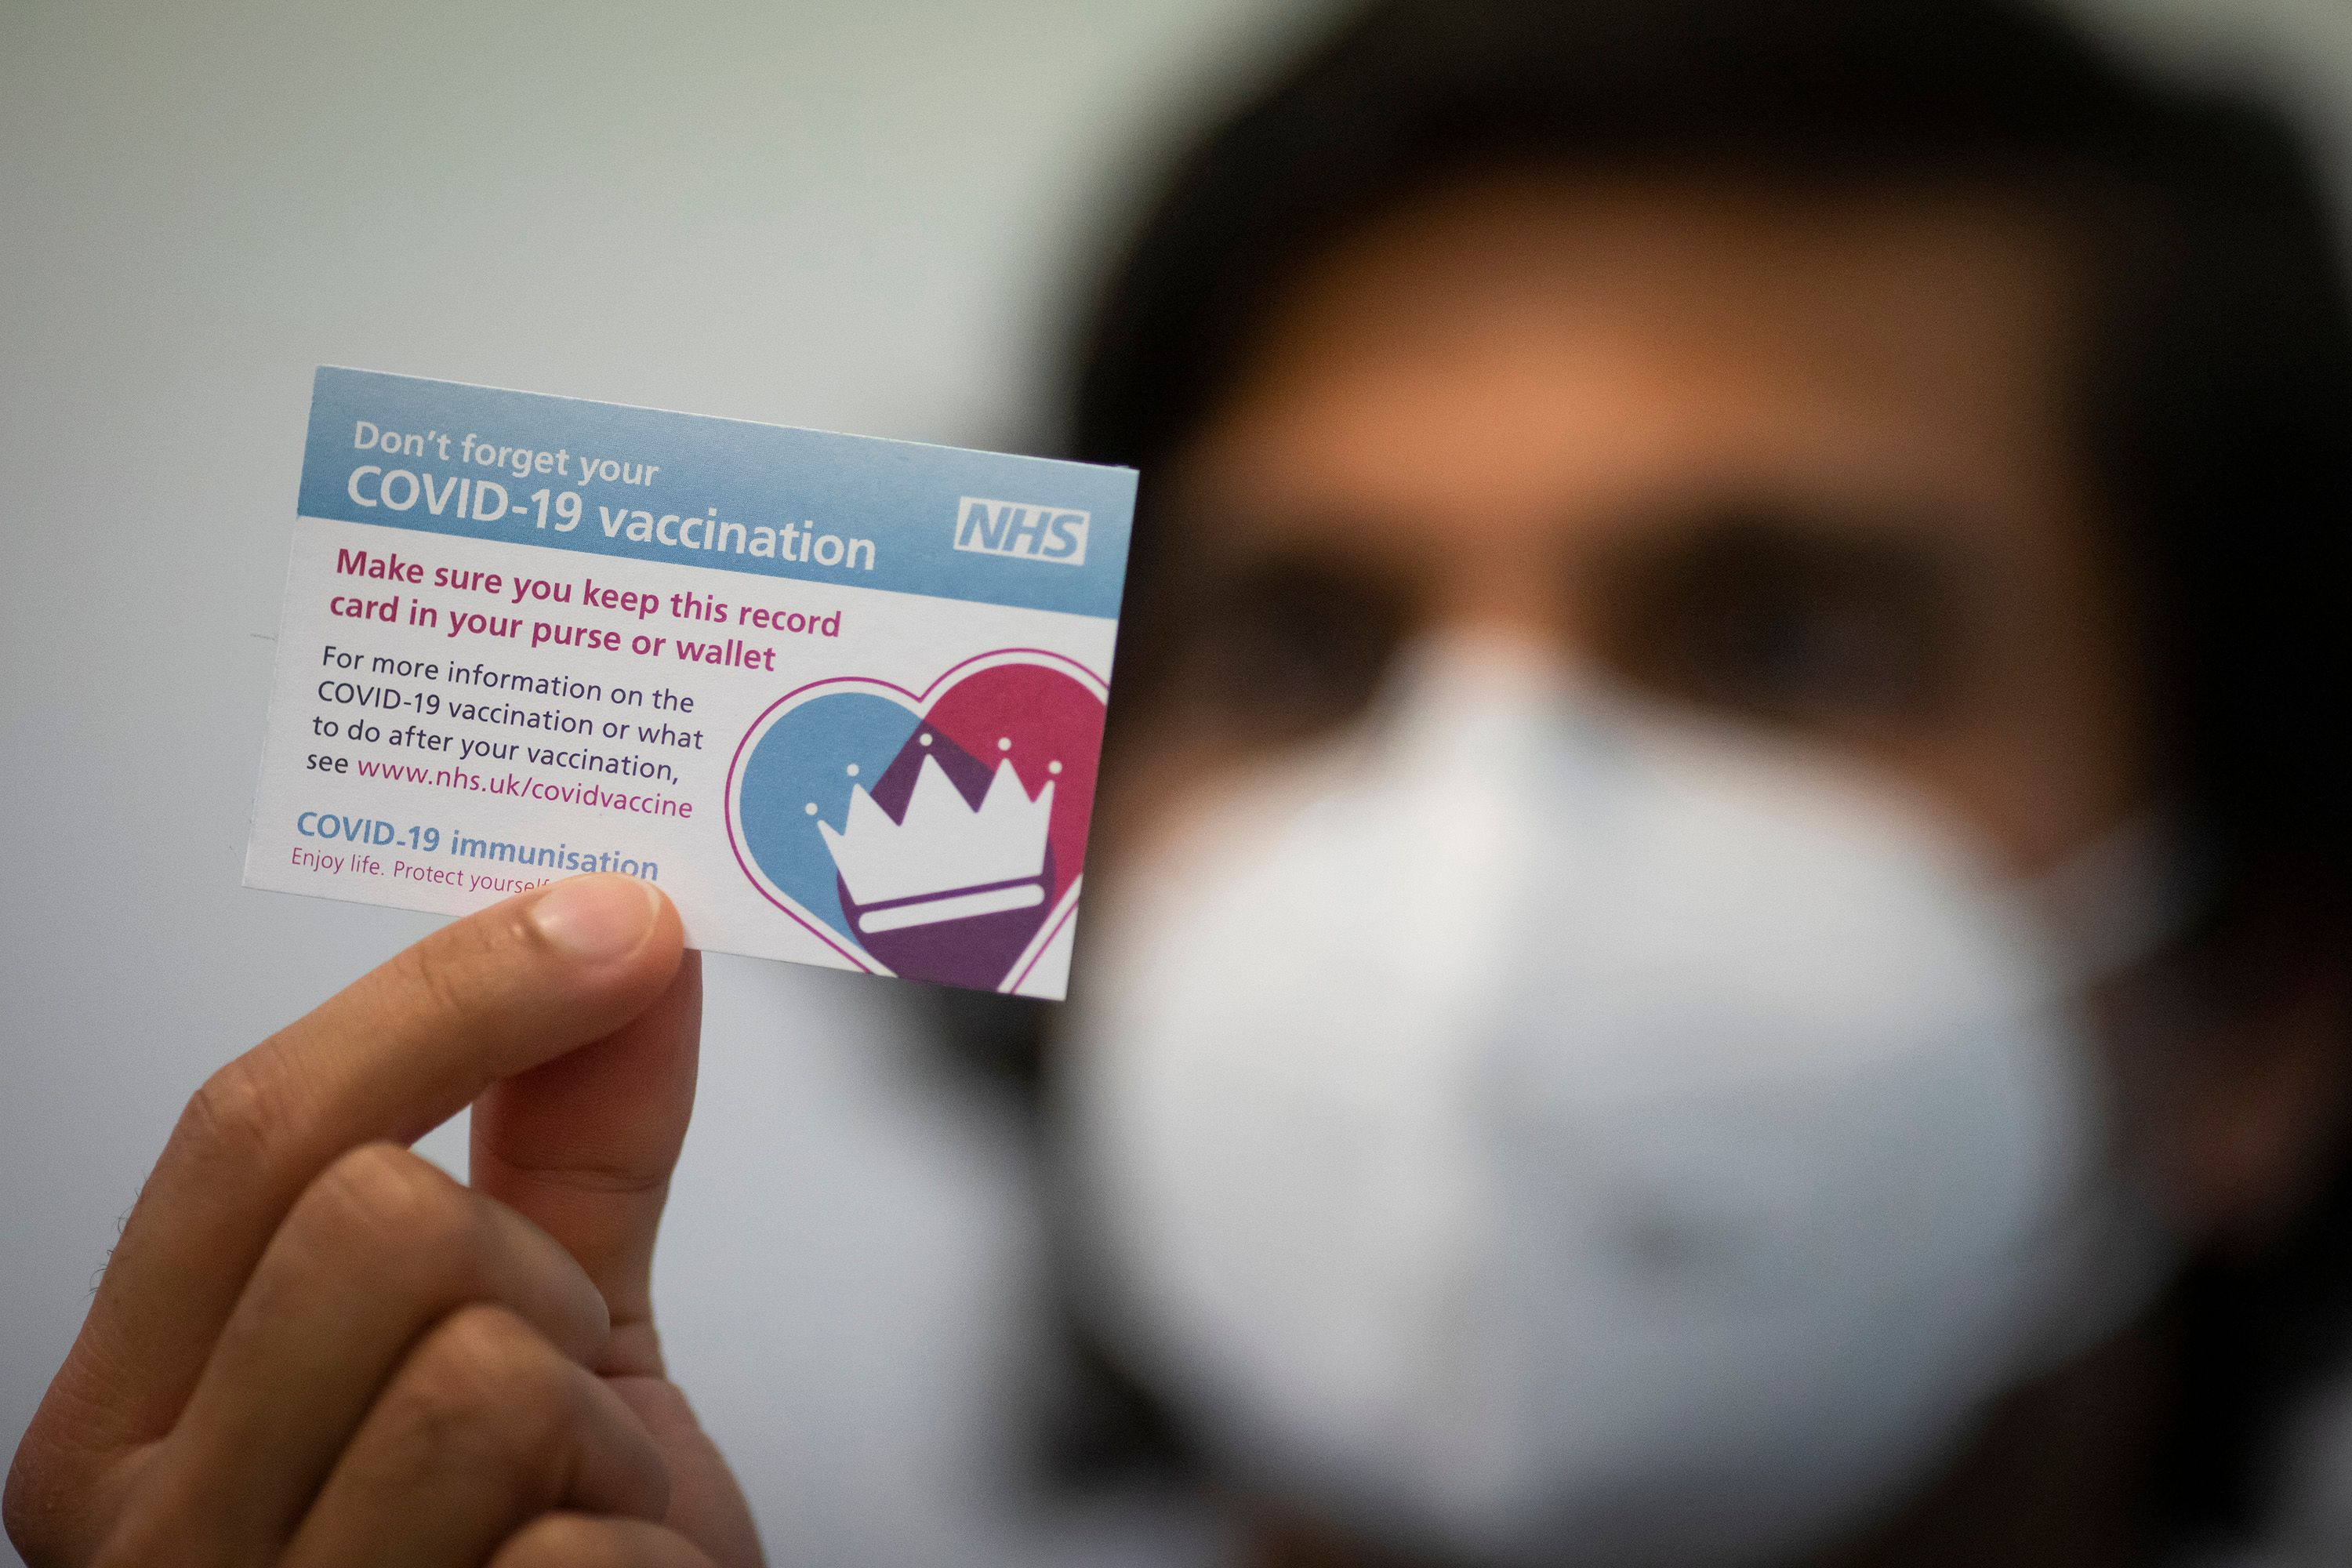 NHS COVID Vaccination Card